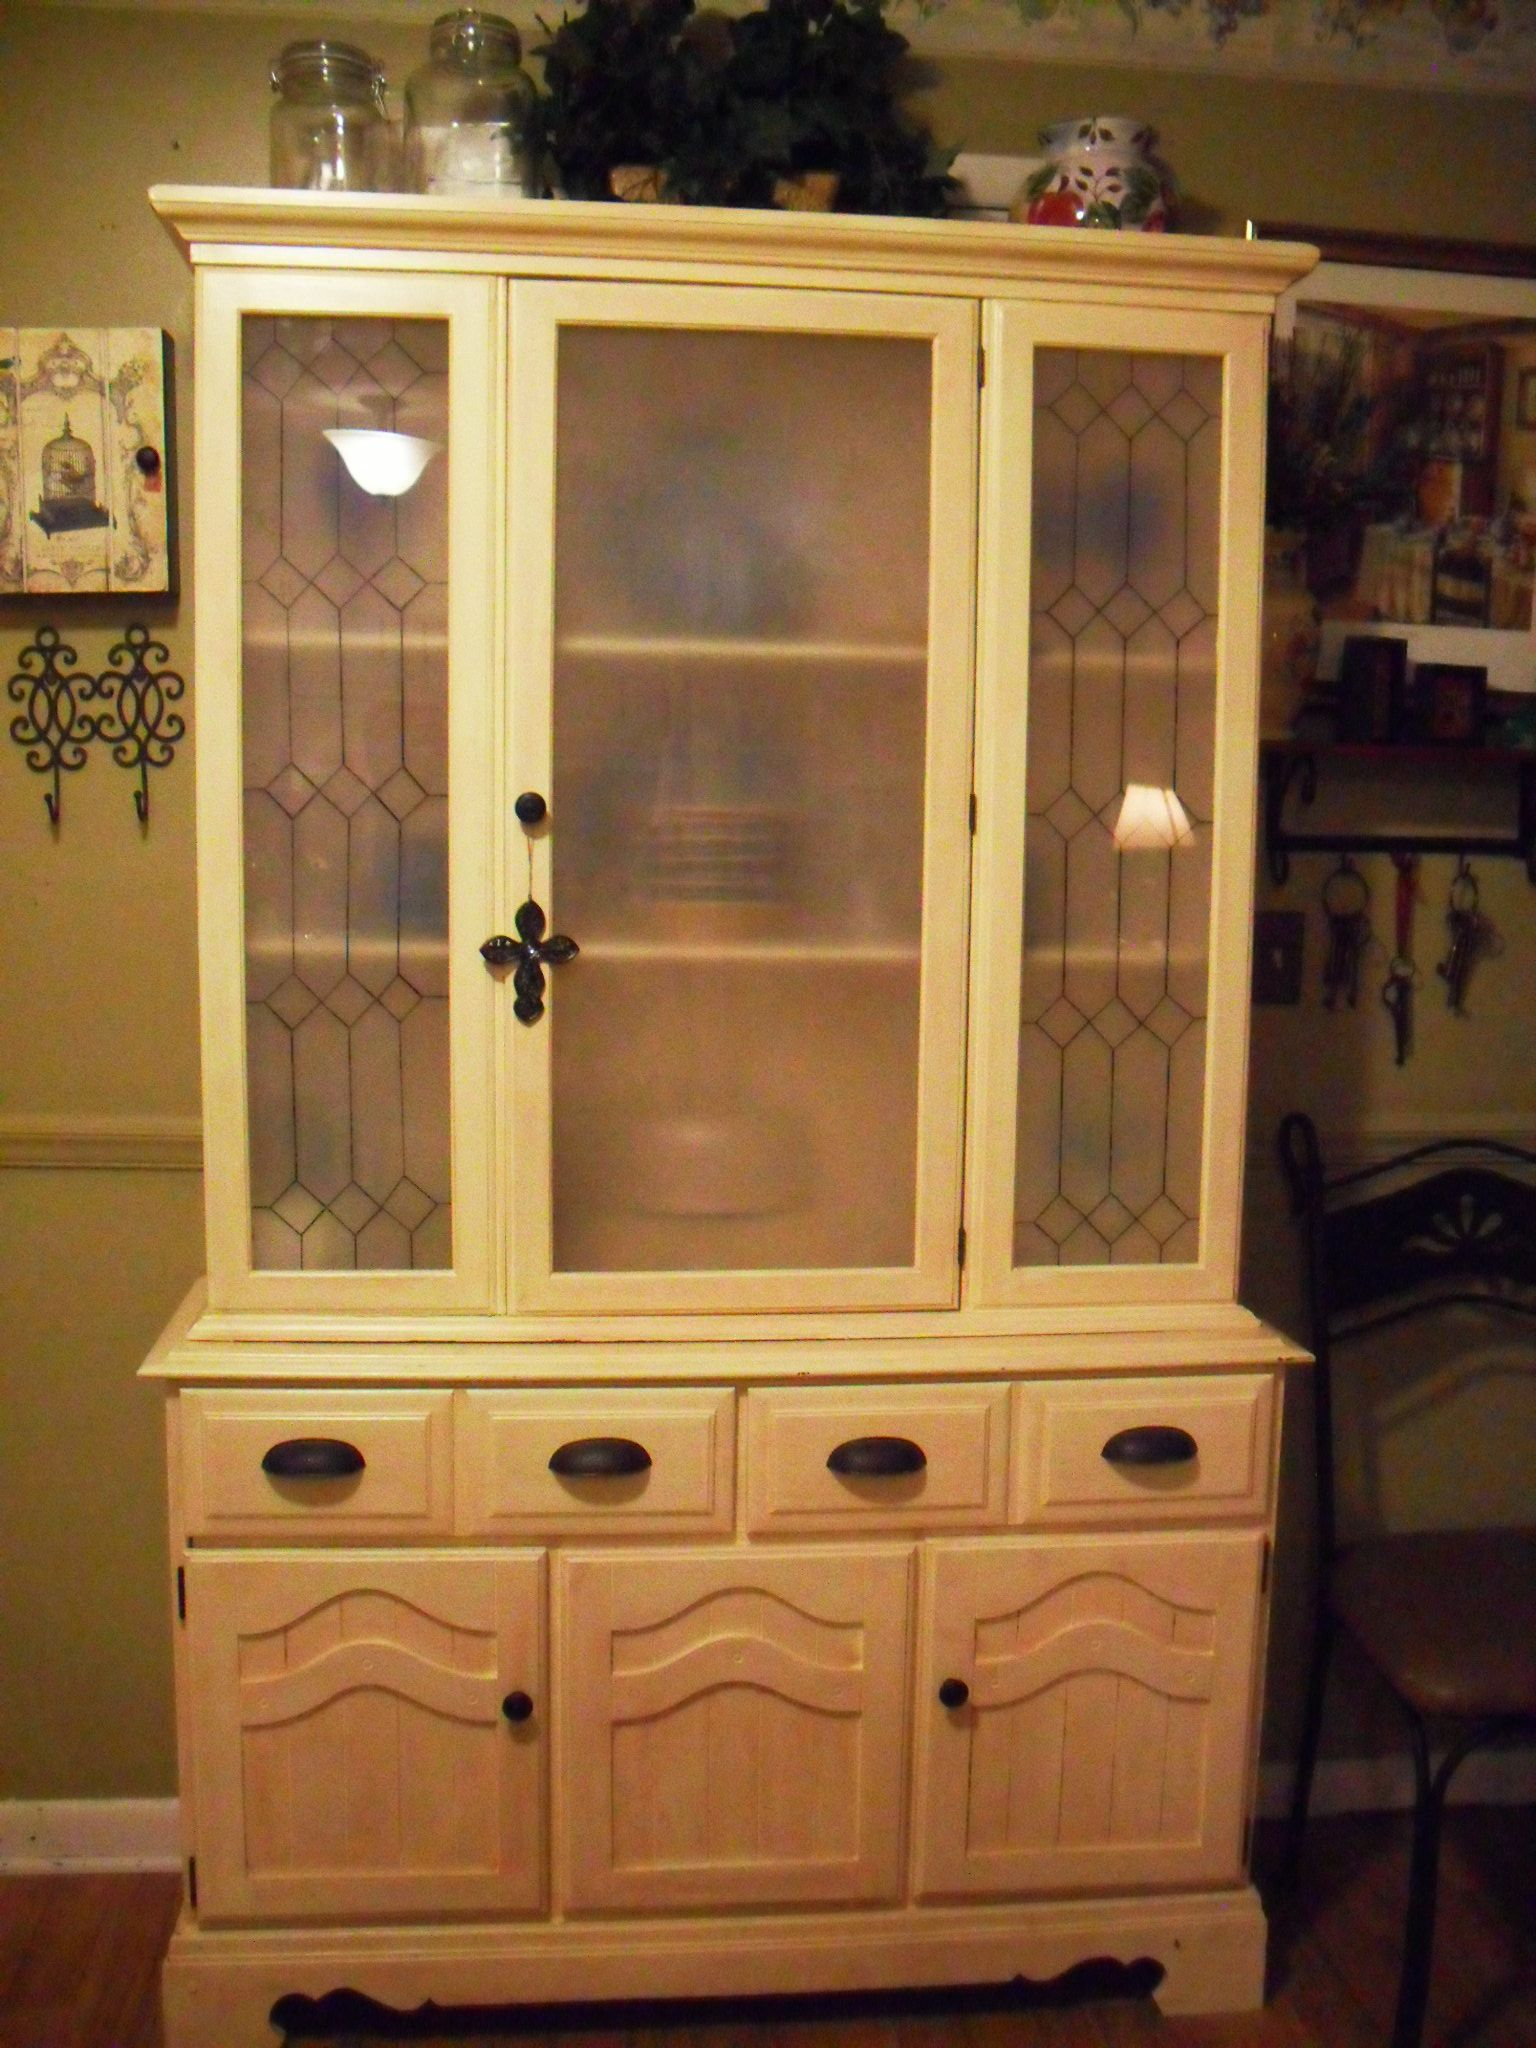 modern china cabinet display ideas - Google Search | Dine -Cenar ...